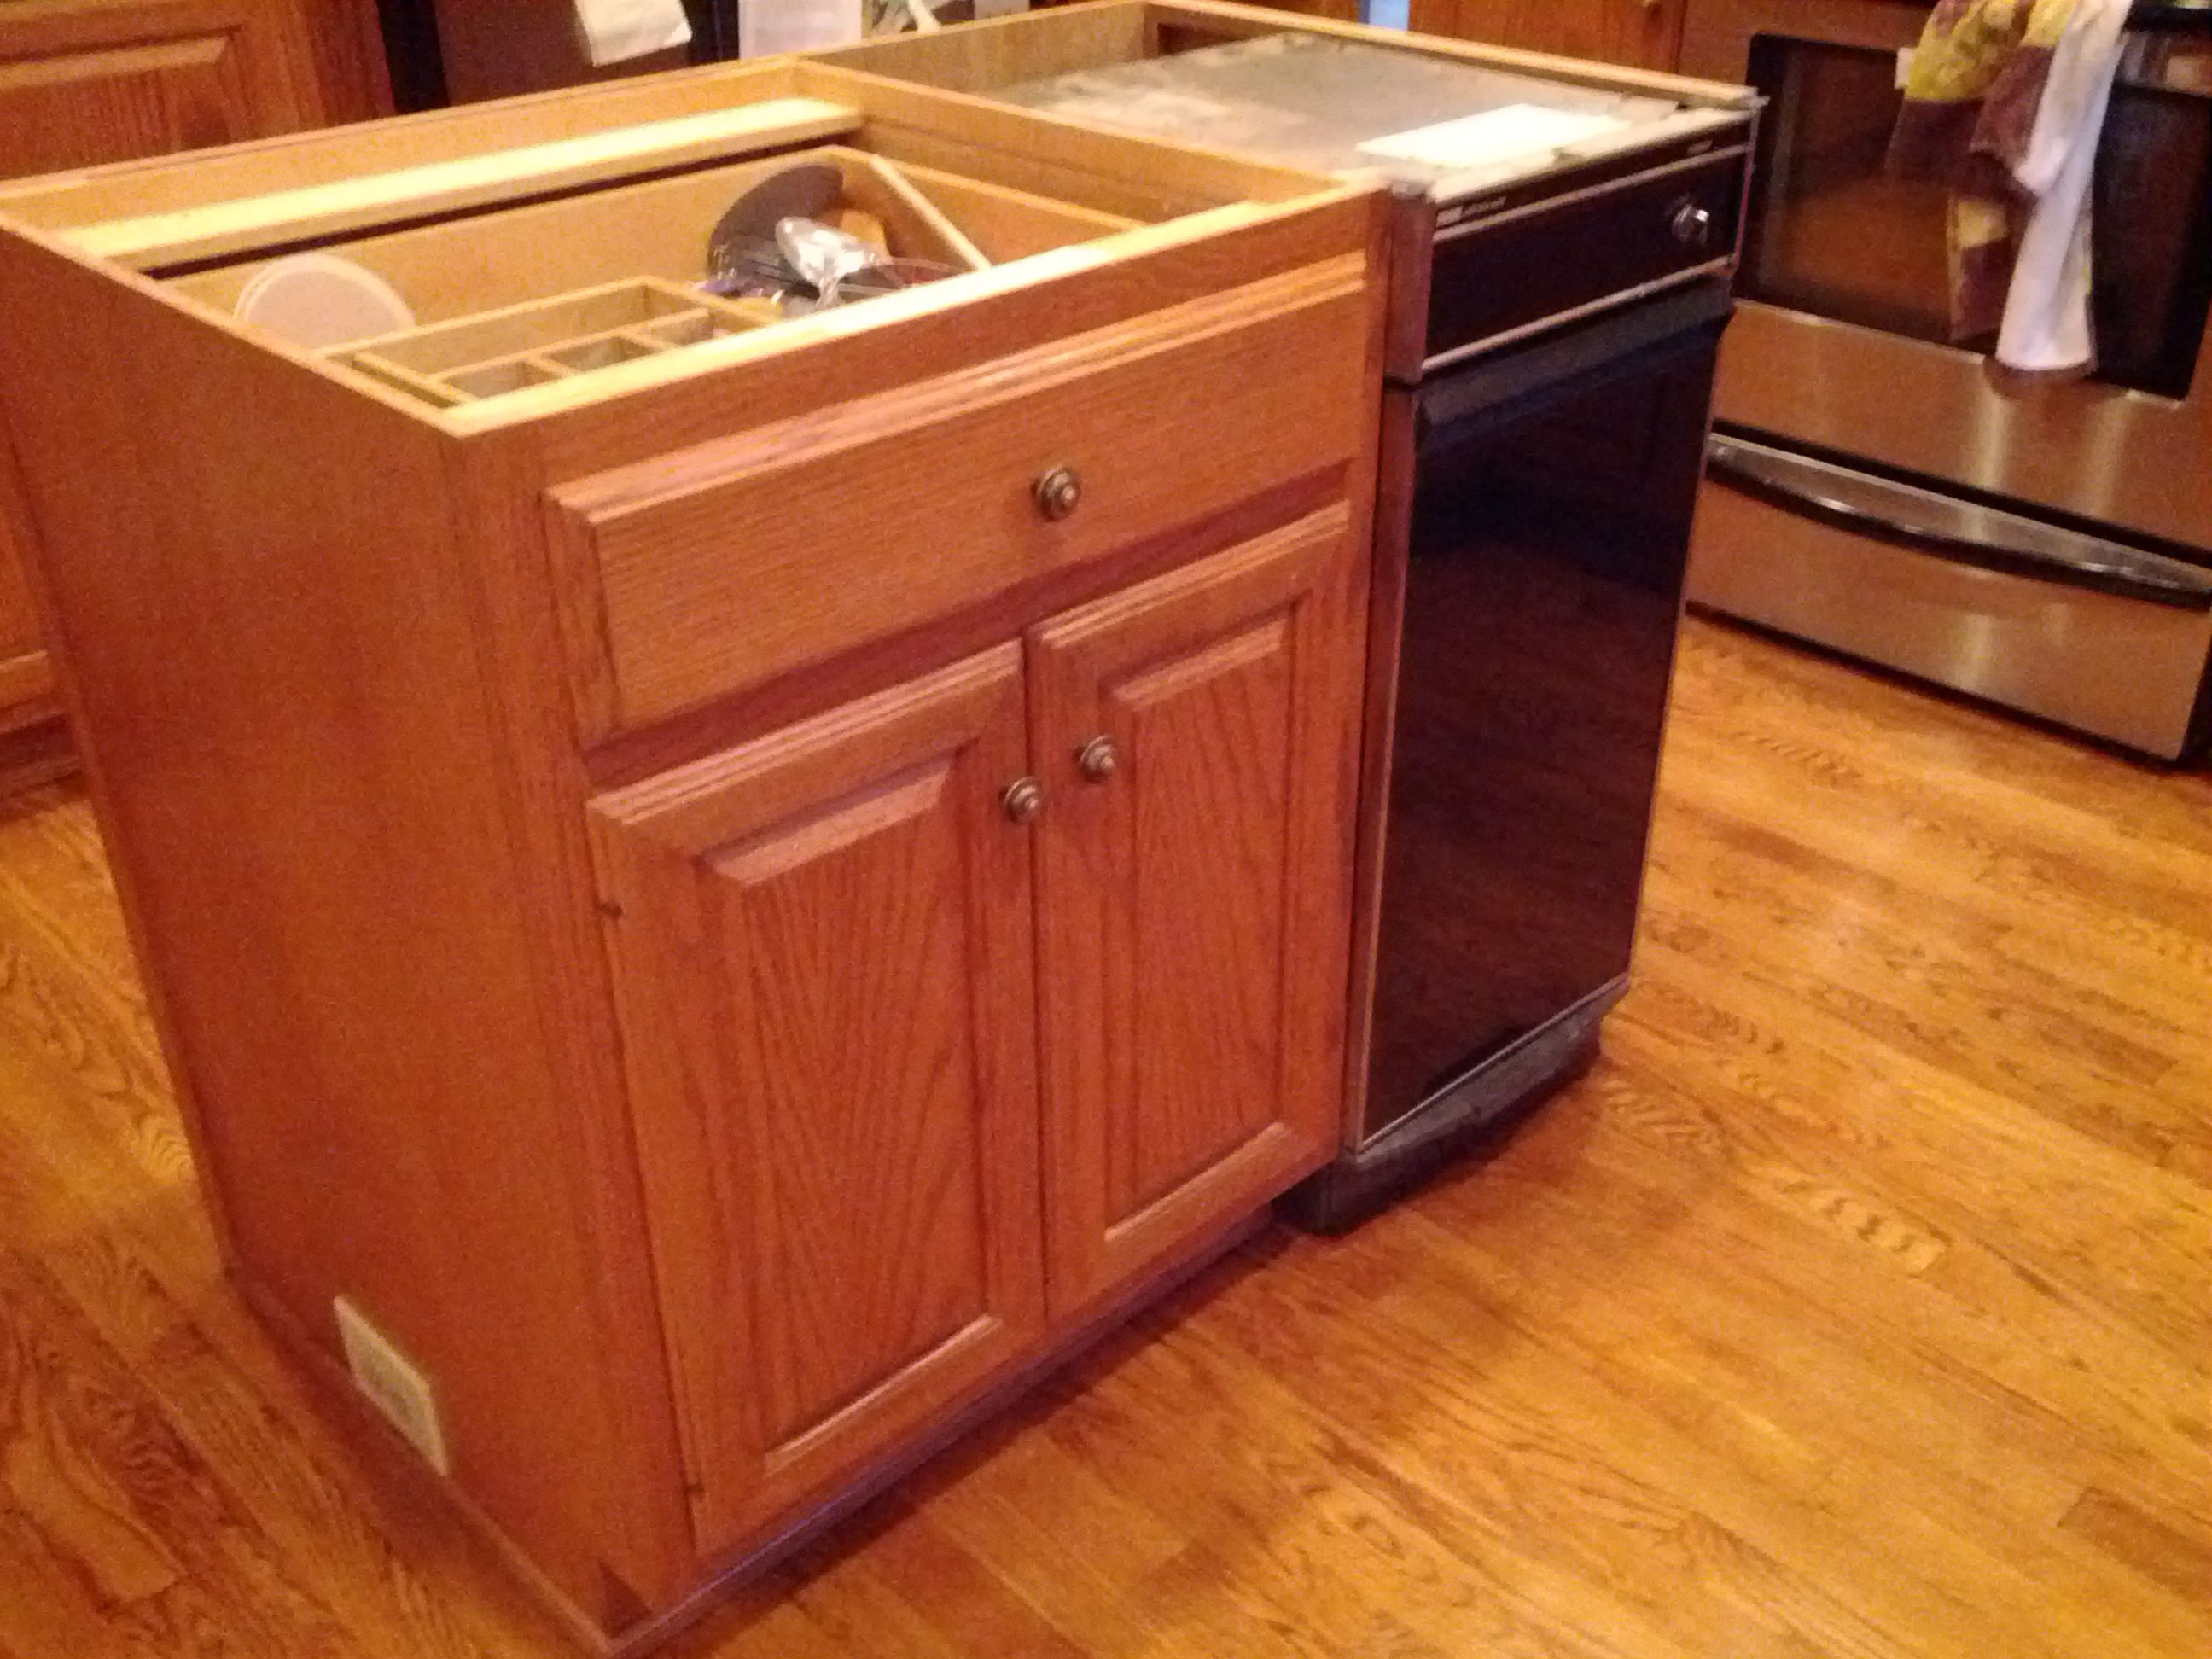 kitchen trash compactor oakley backpack sink original in island removed and